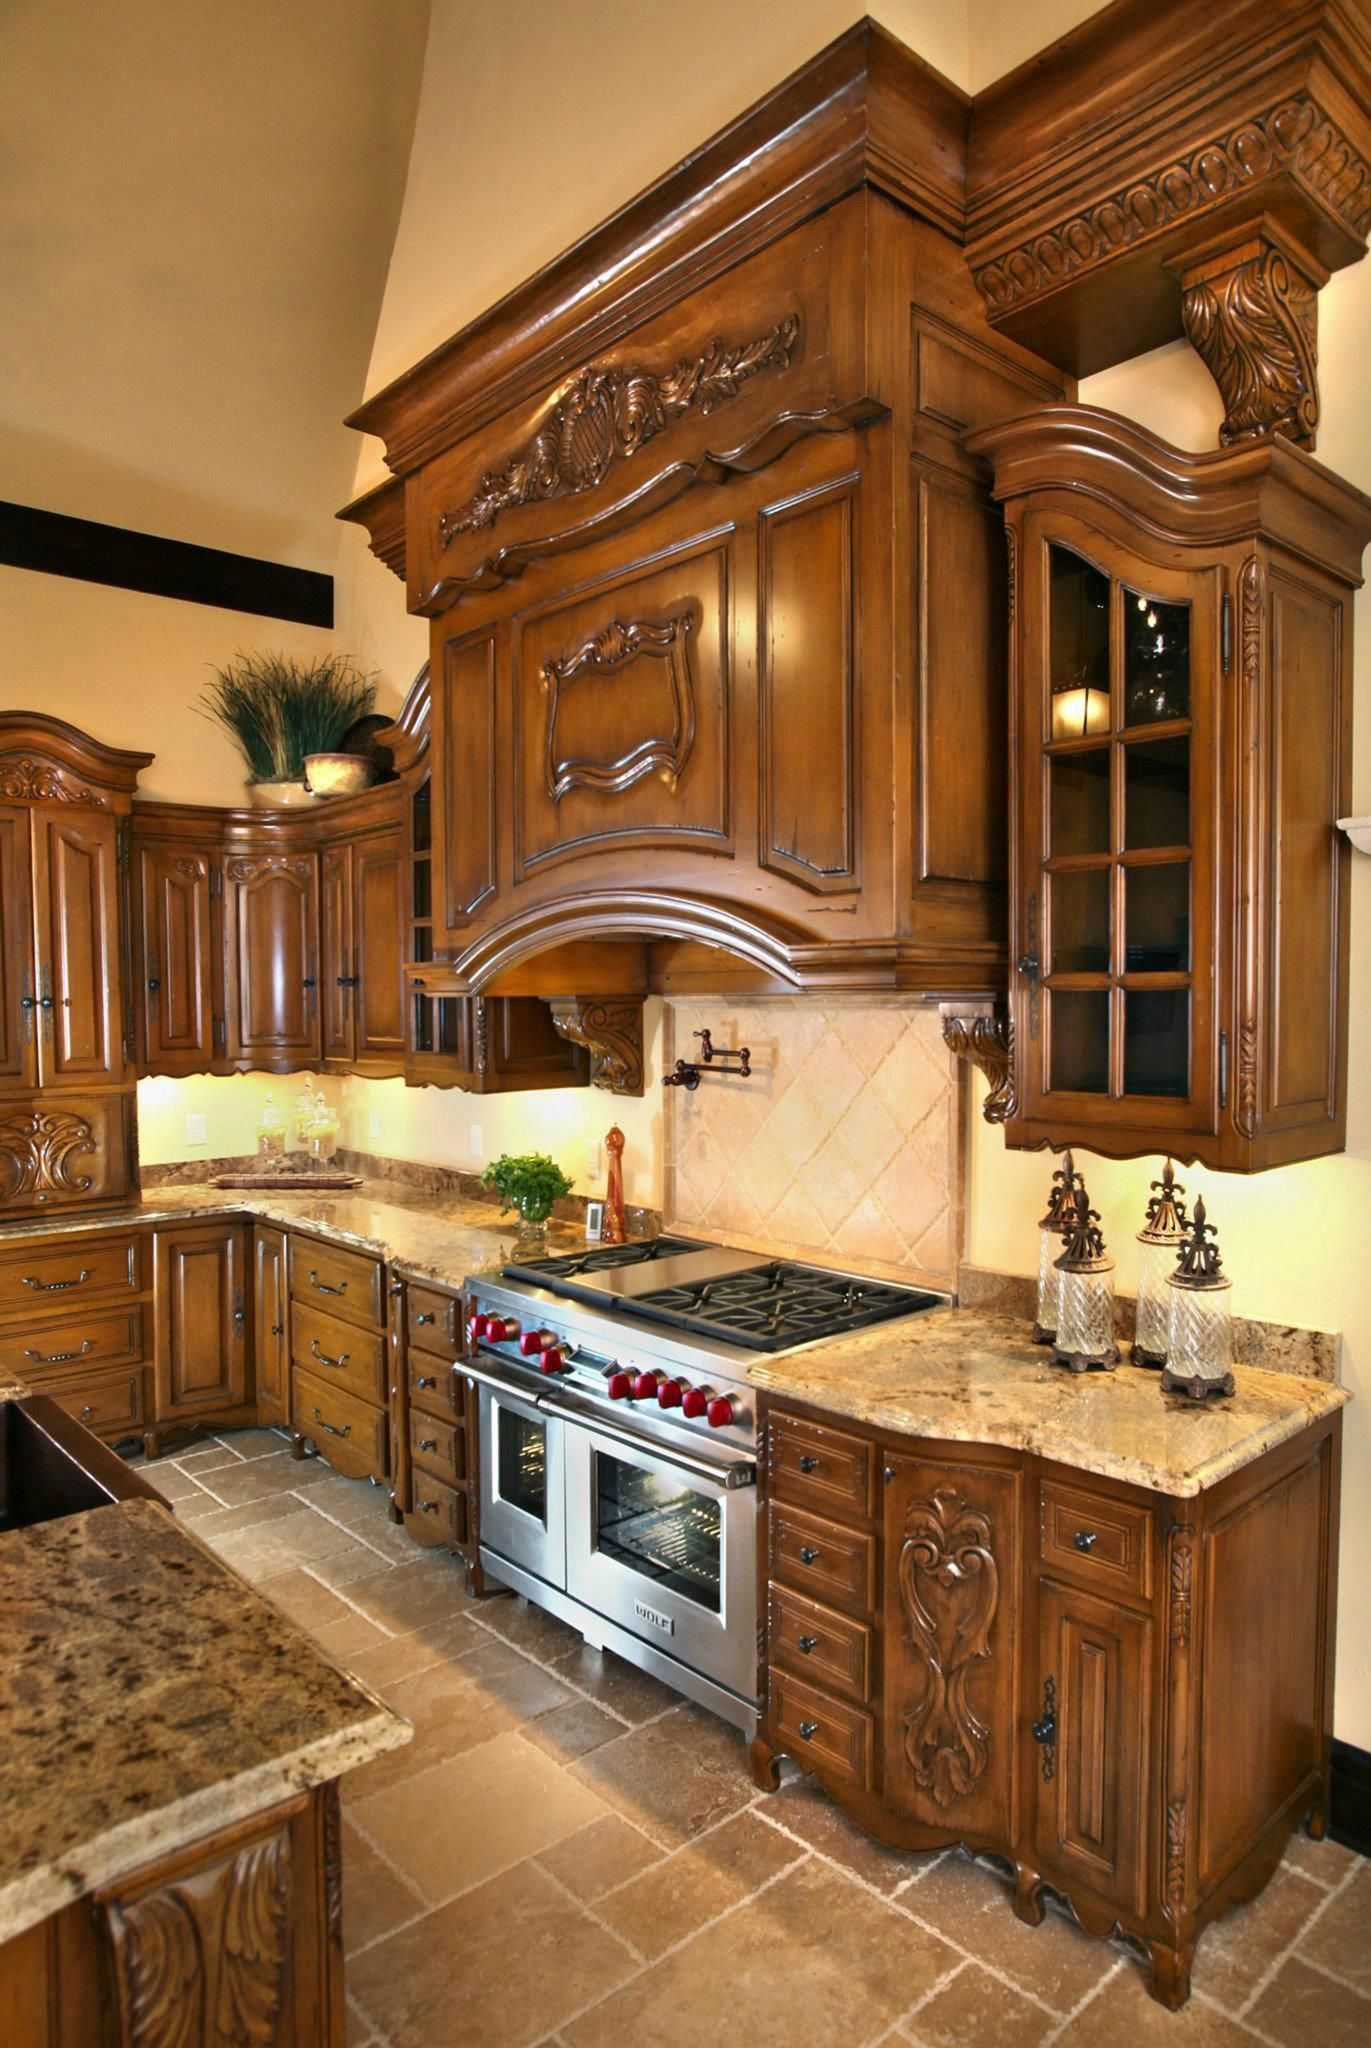 tuscankitchens tuscan kitchen tuscan kitchen design rustic kitchen on kitchen decor themes rustic id=37924